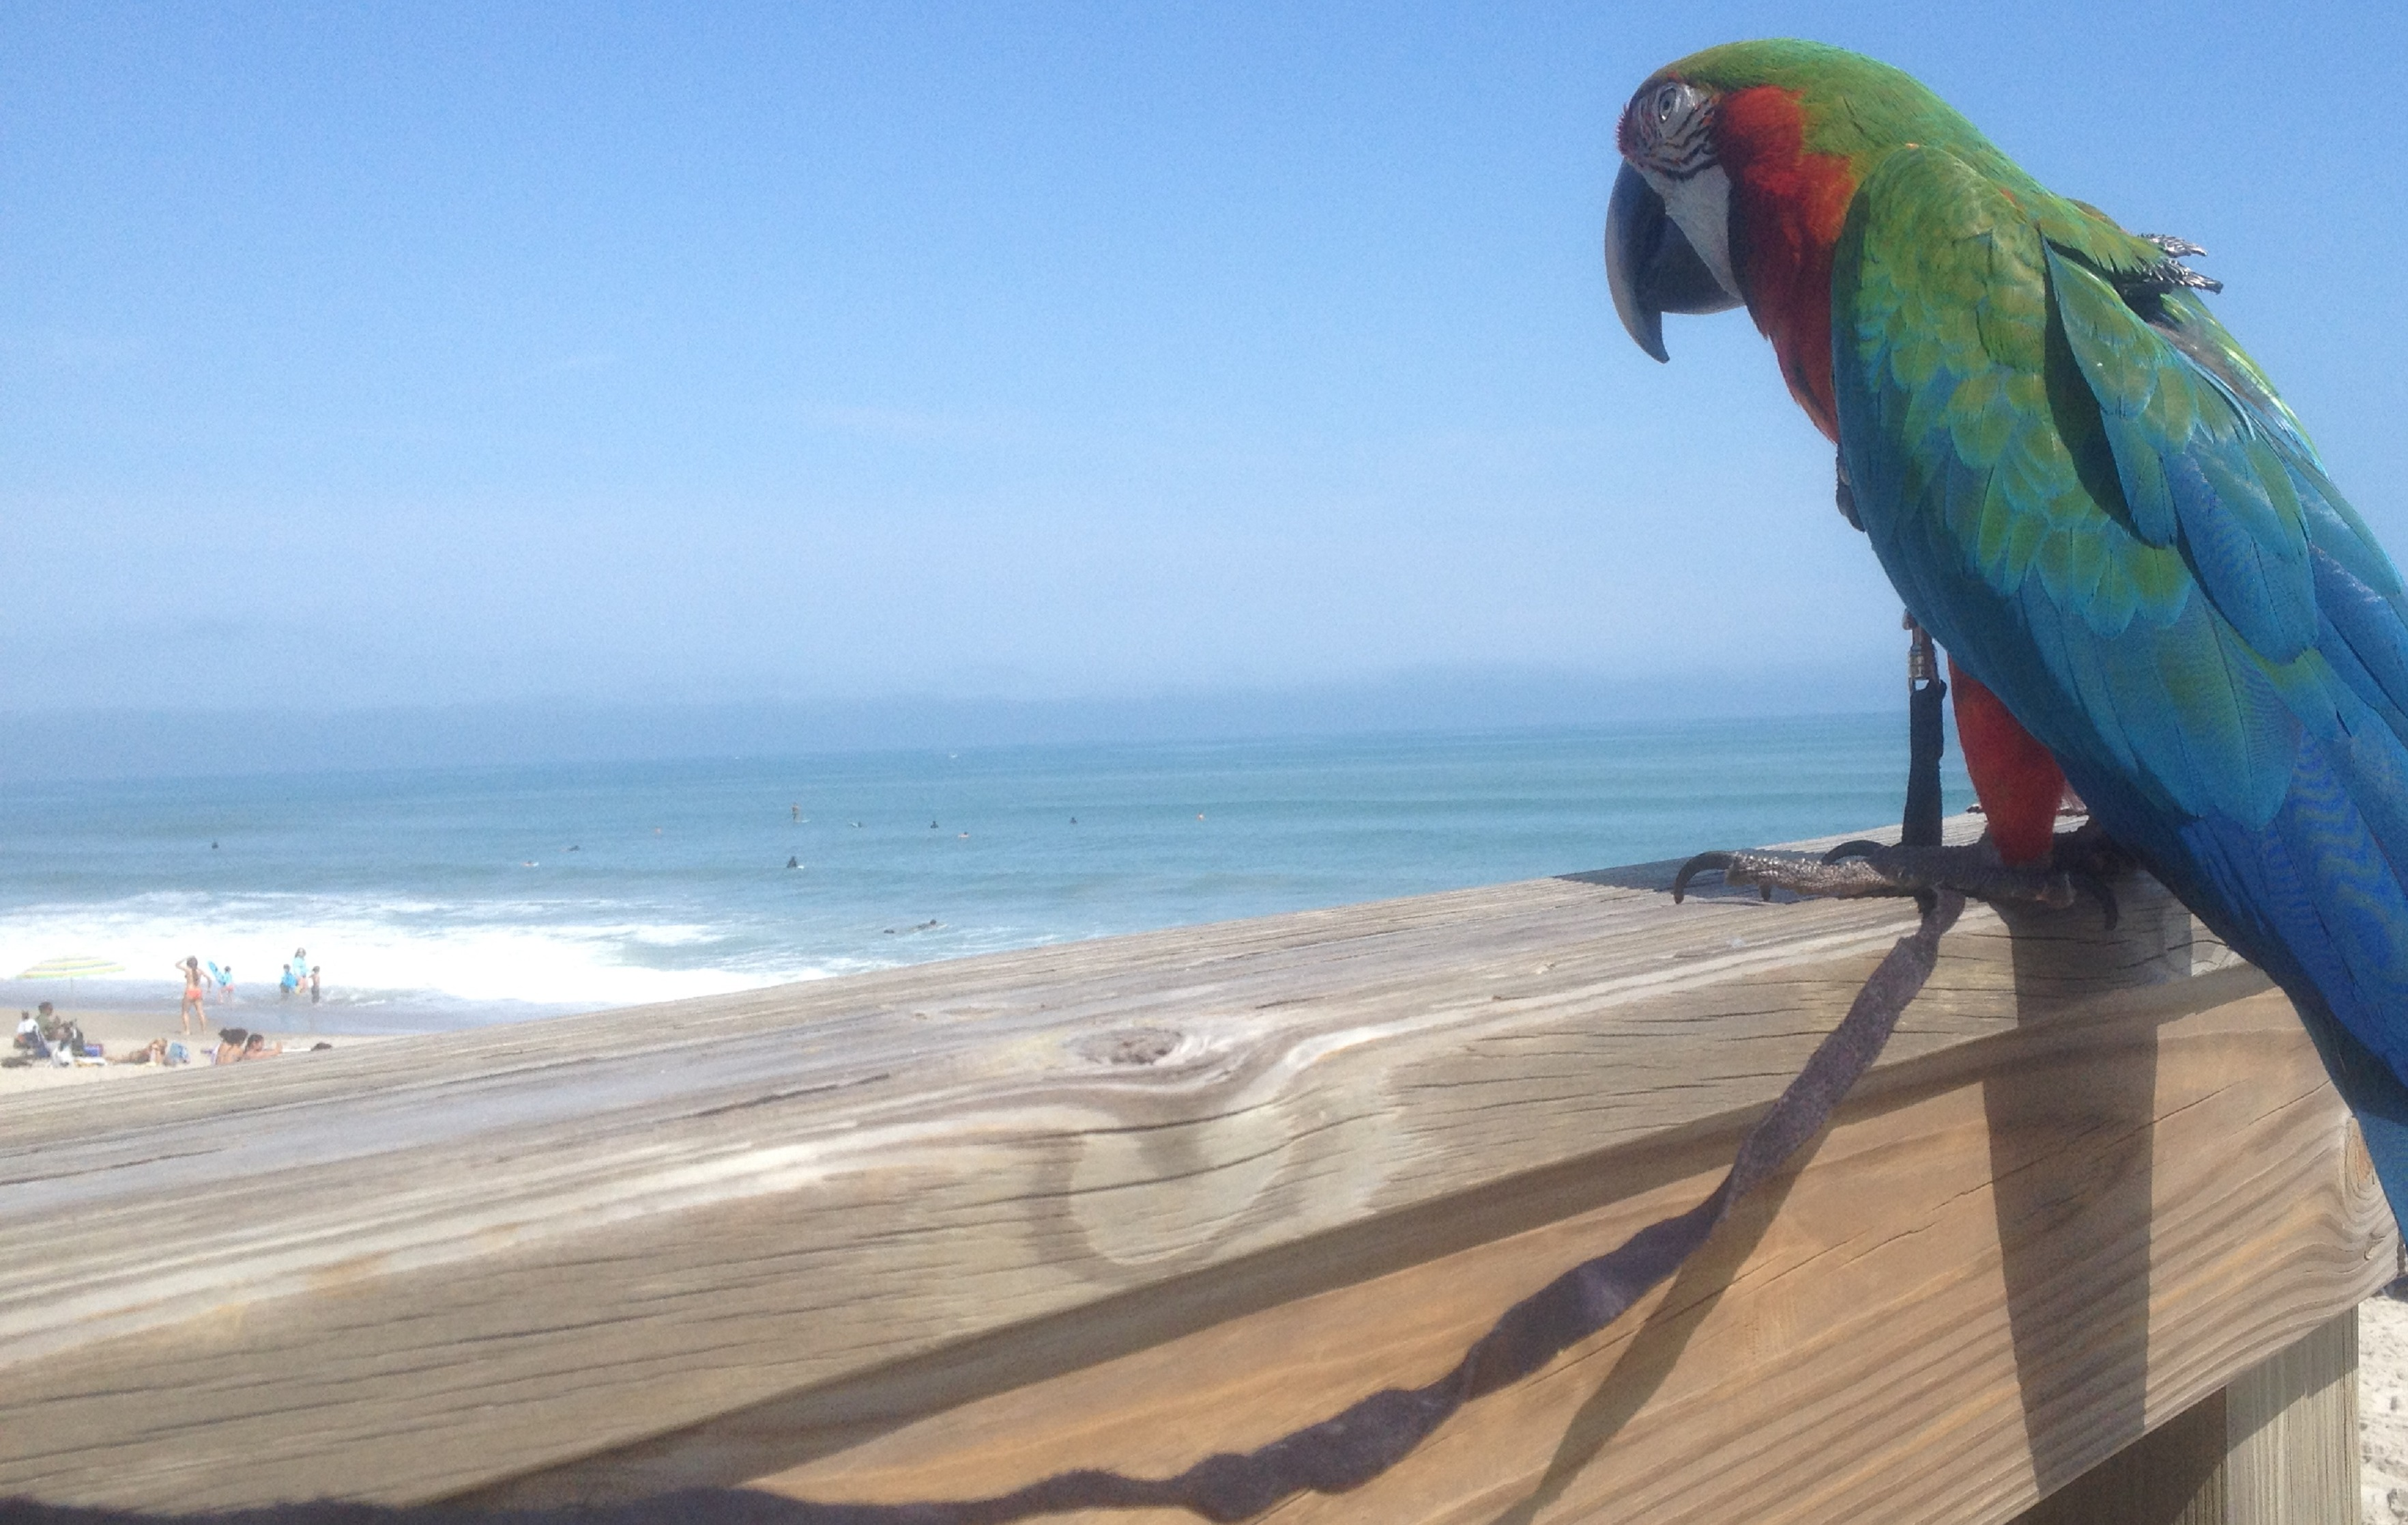 It's a beautiful day at the beach as Kosh watches the surfers and tourists.